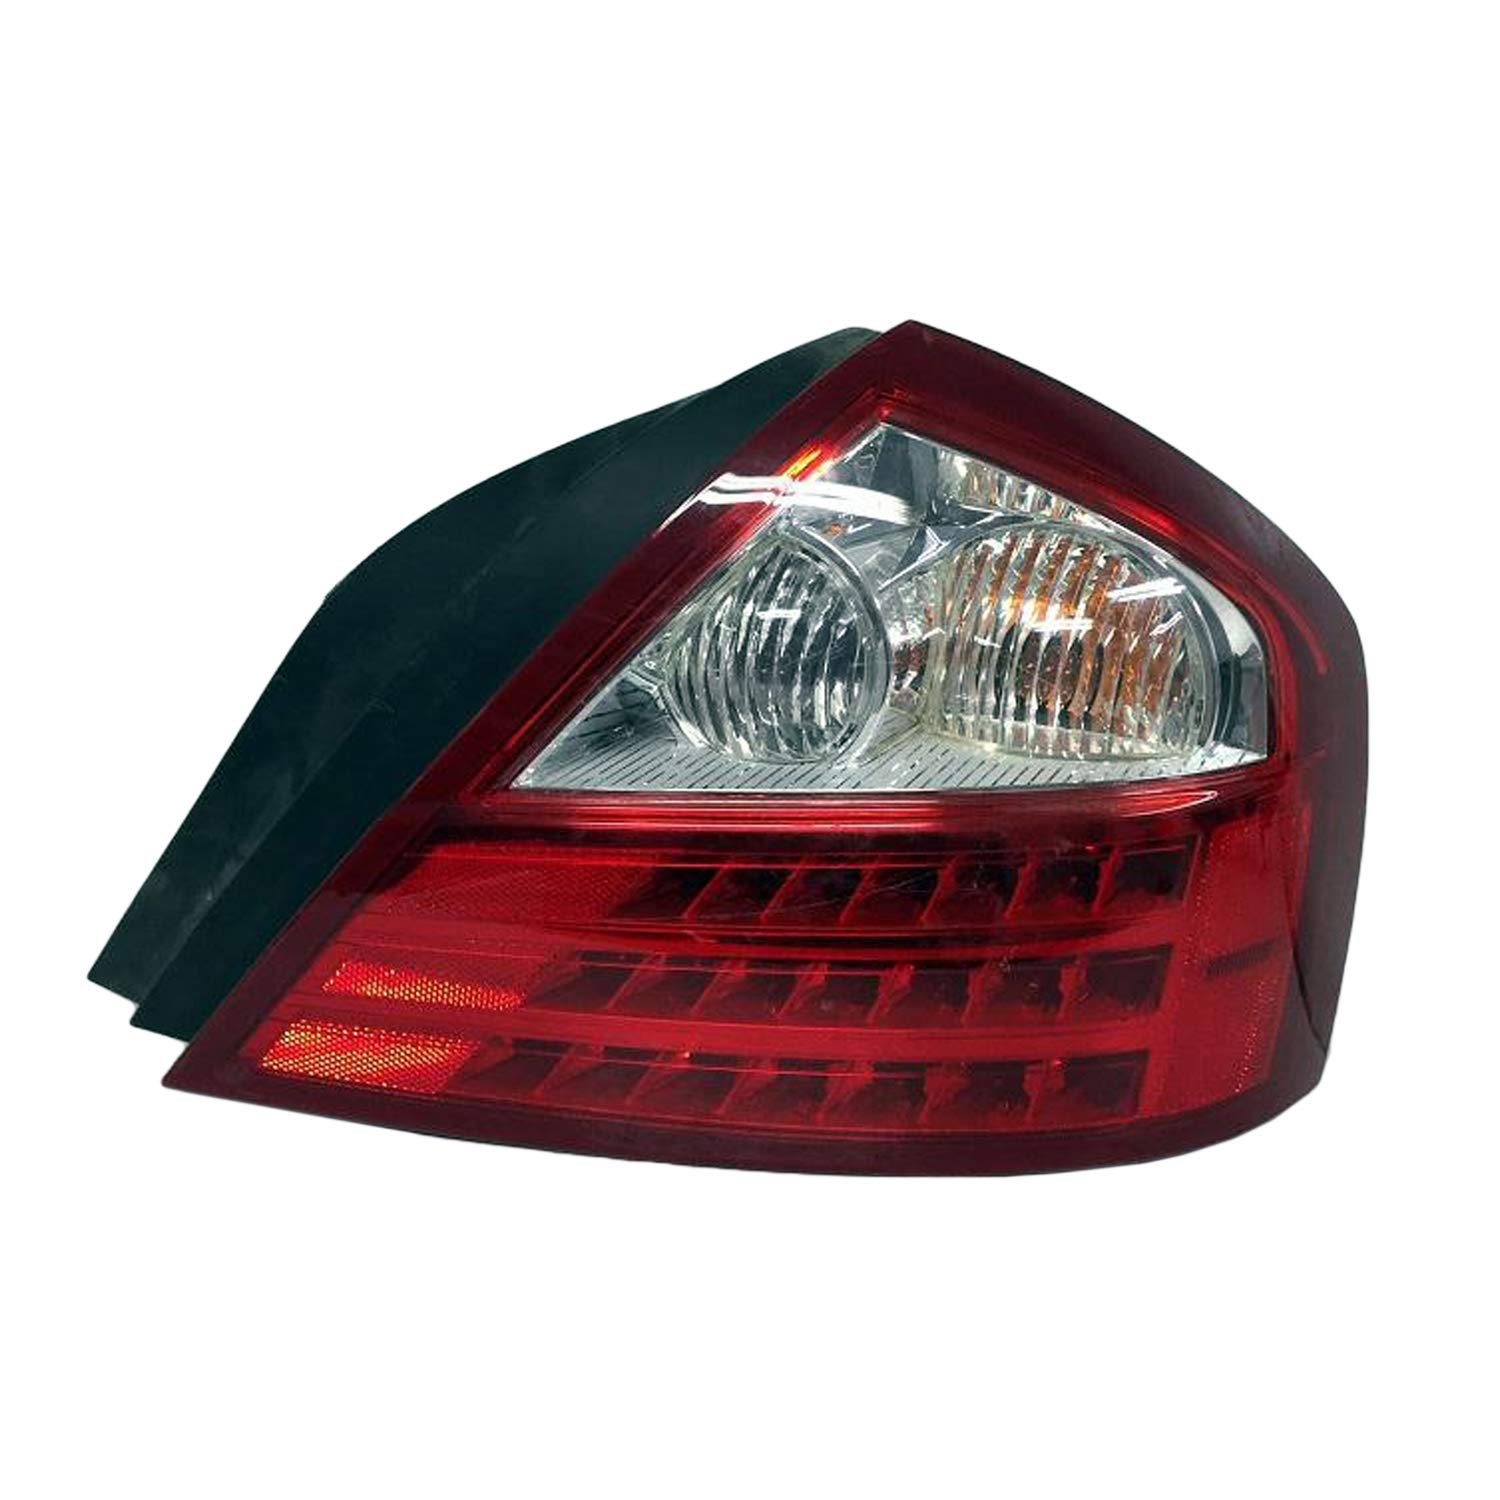 INFINITI Q45 PartsChannel IN2801126R OE Replacement Tail Light Assembly